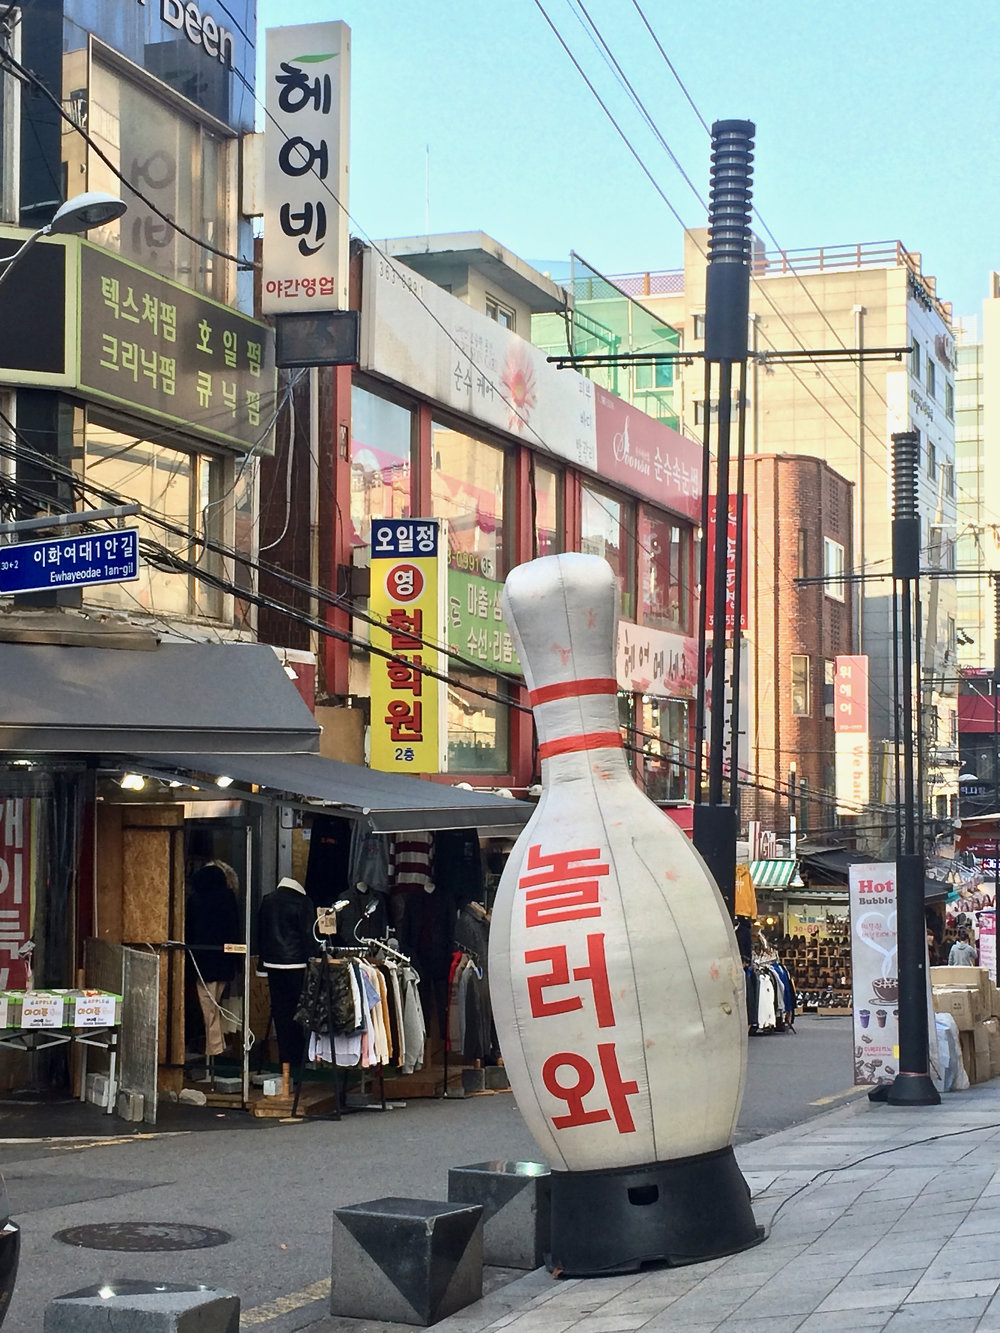 Giant inflatable bowling pin in Seoul, South Korea. Photo: (C) Remko Tanis